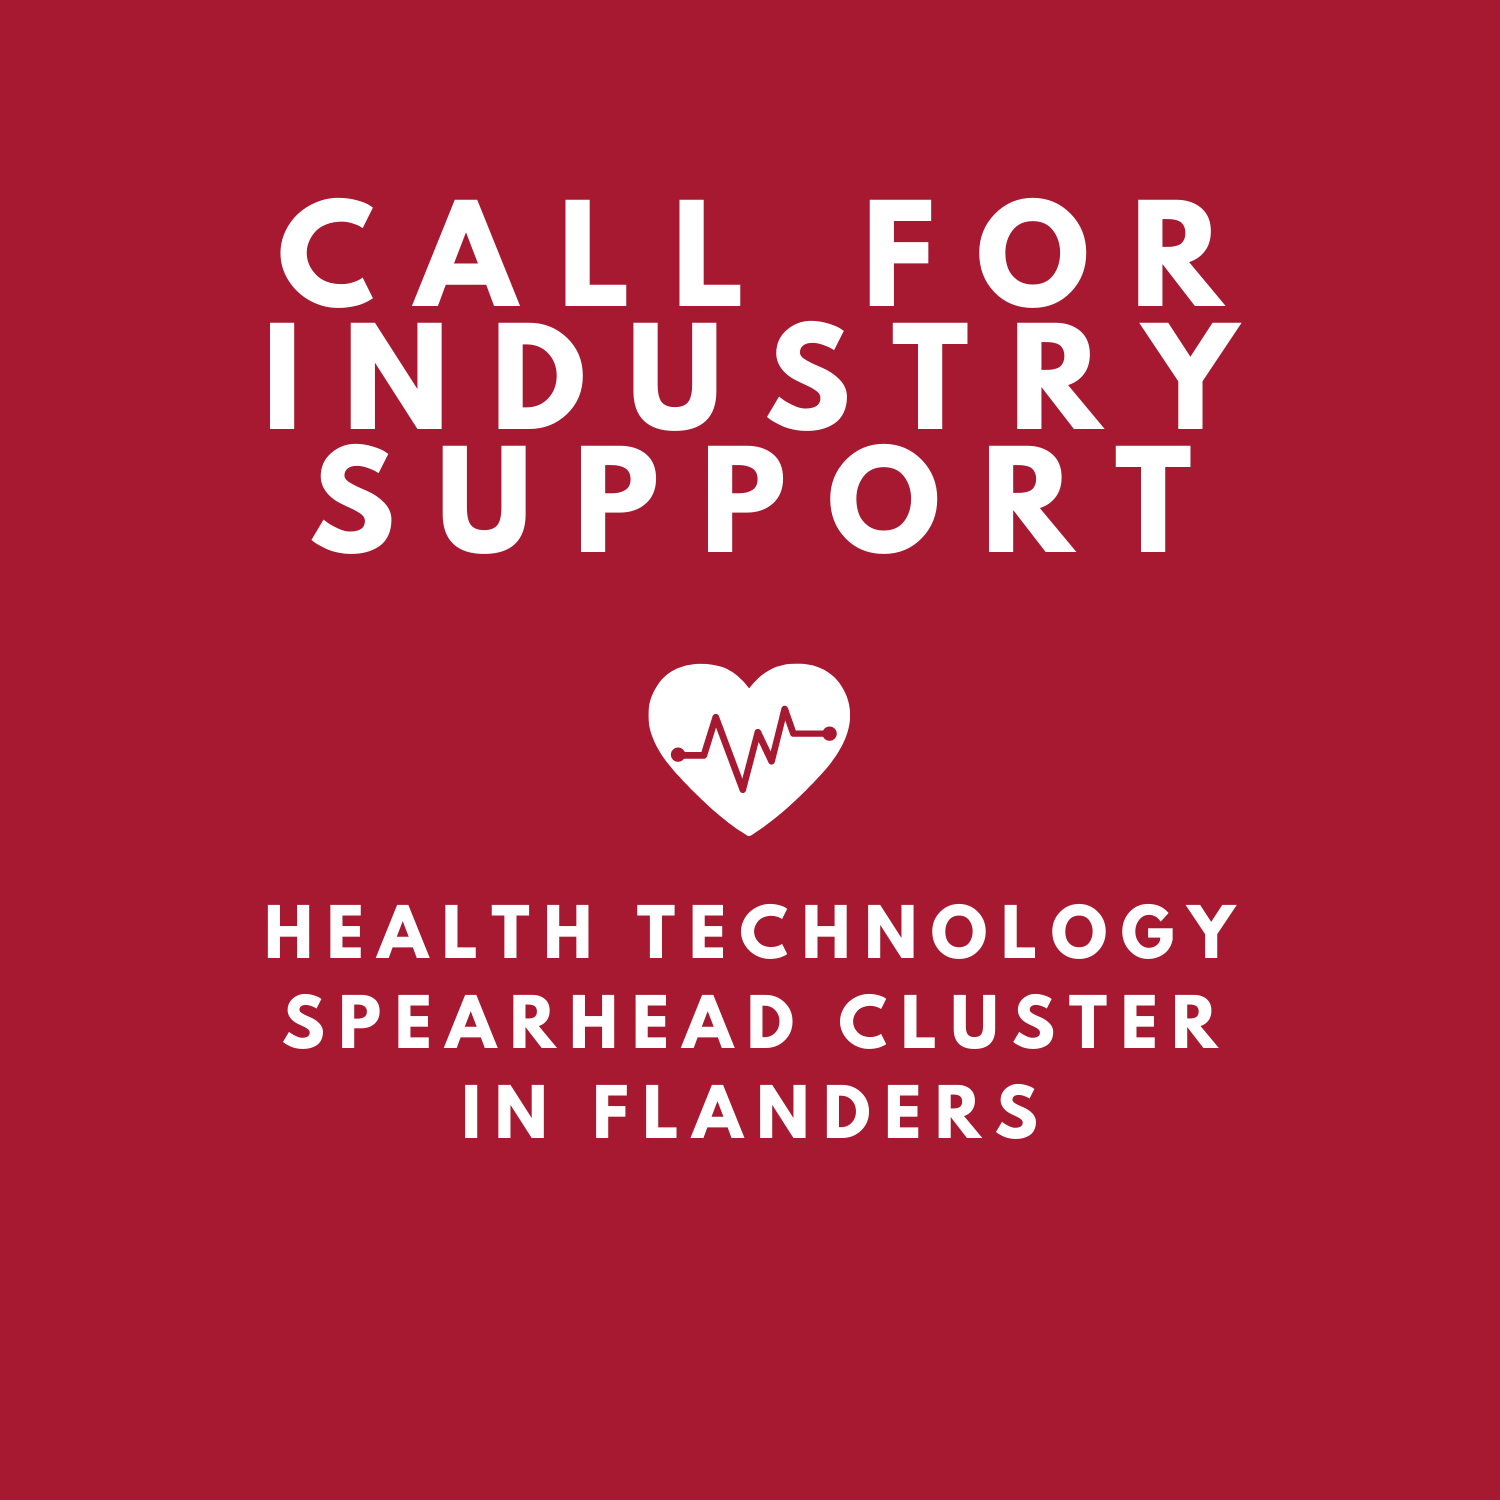 call for industry support